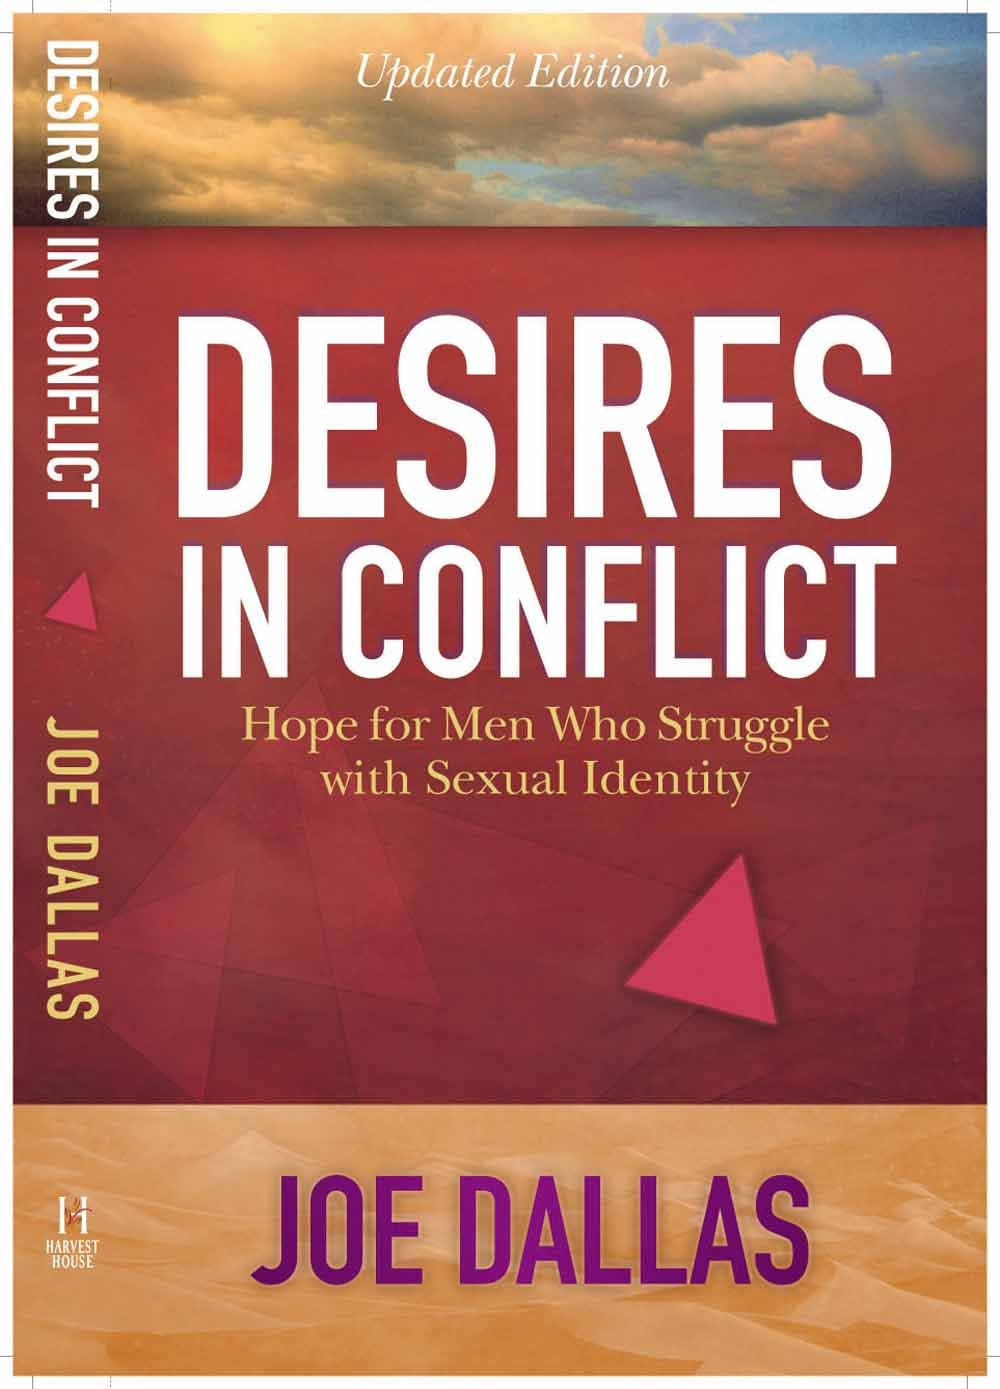 Desires in conflict hope for men who struggle with sexual identity